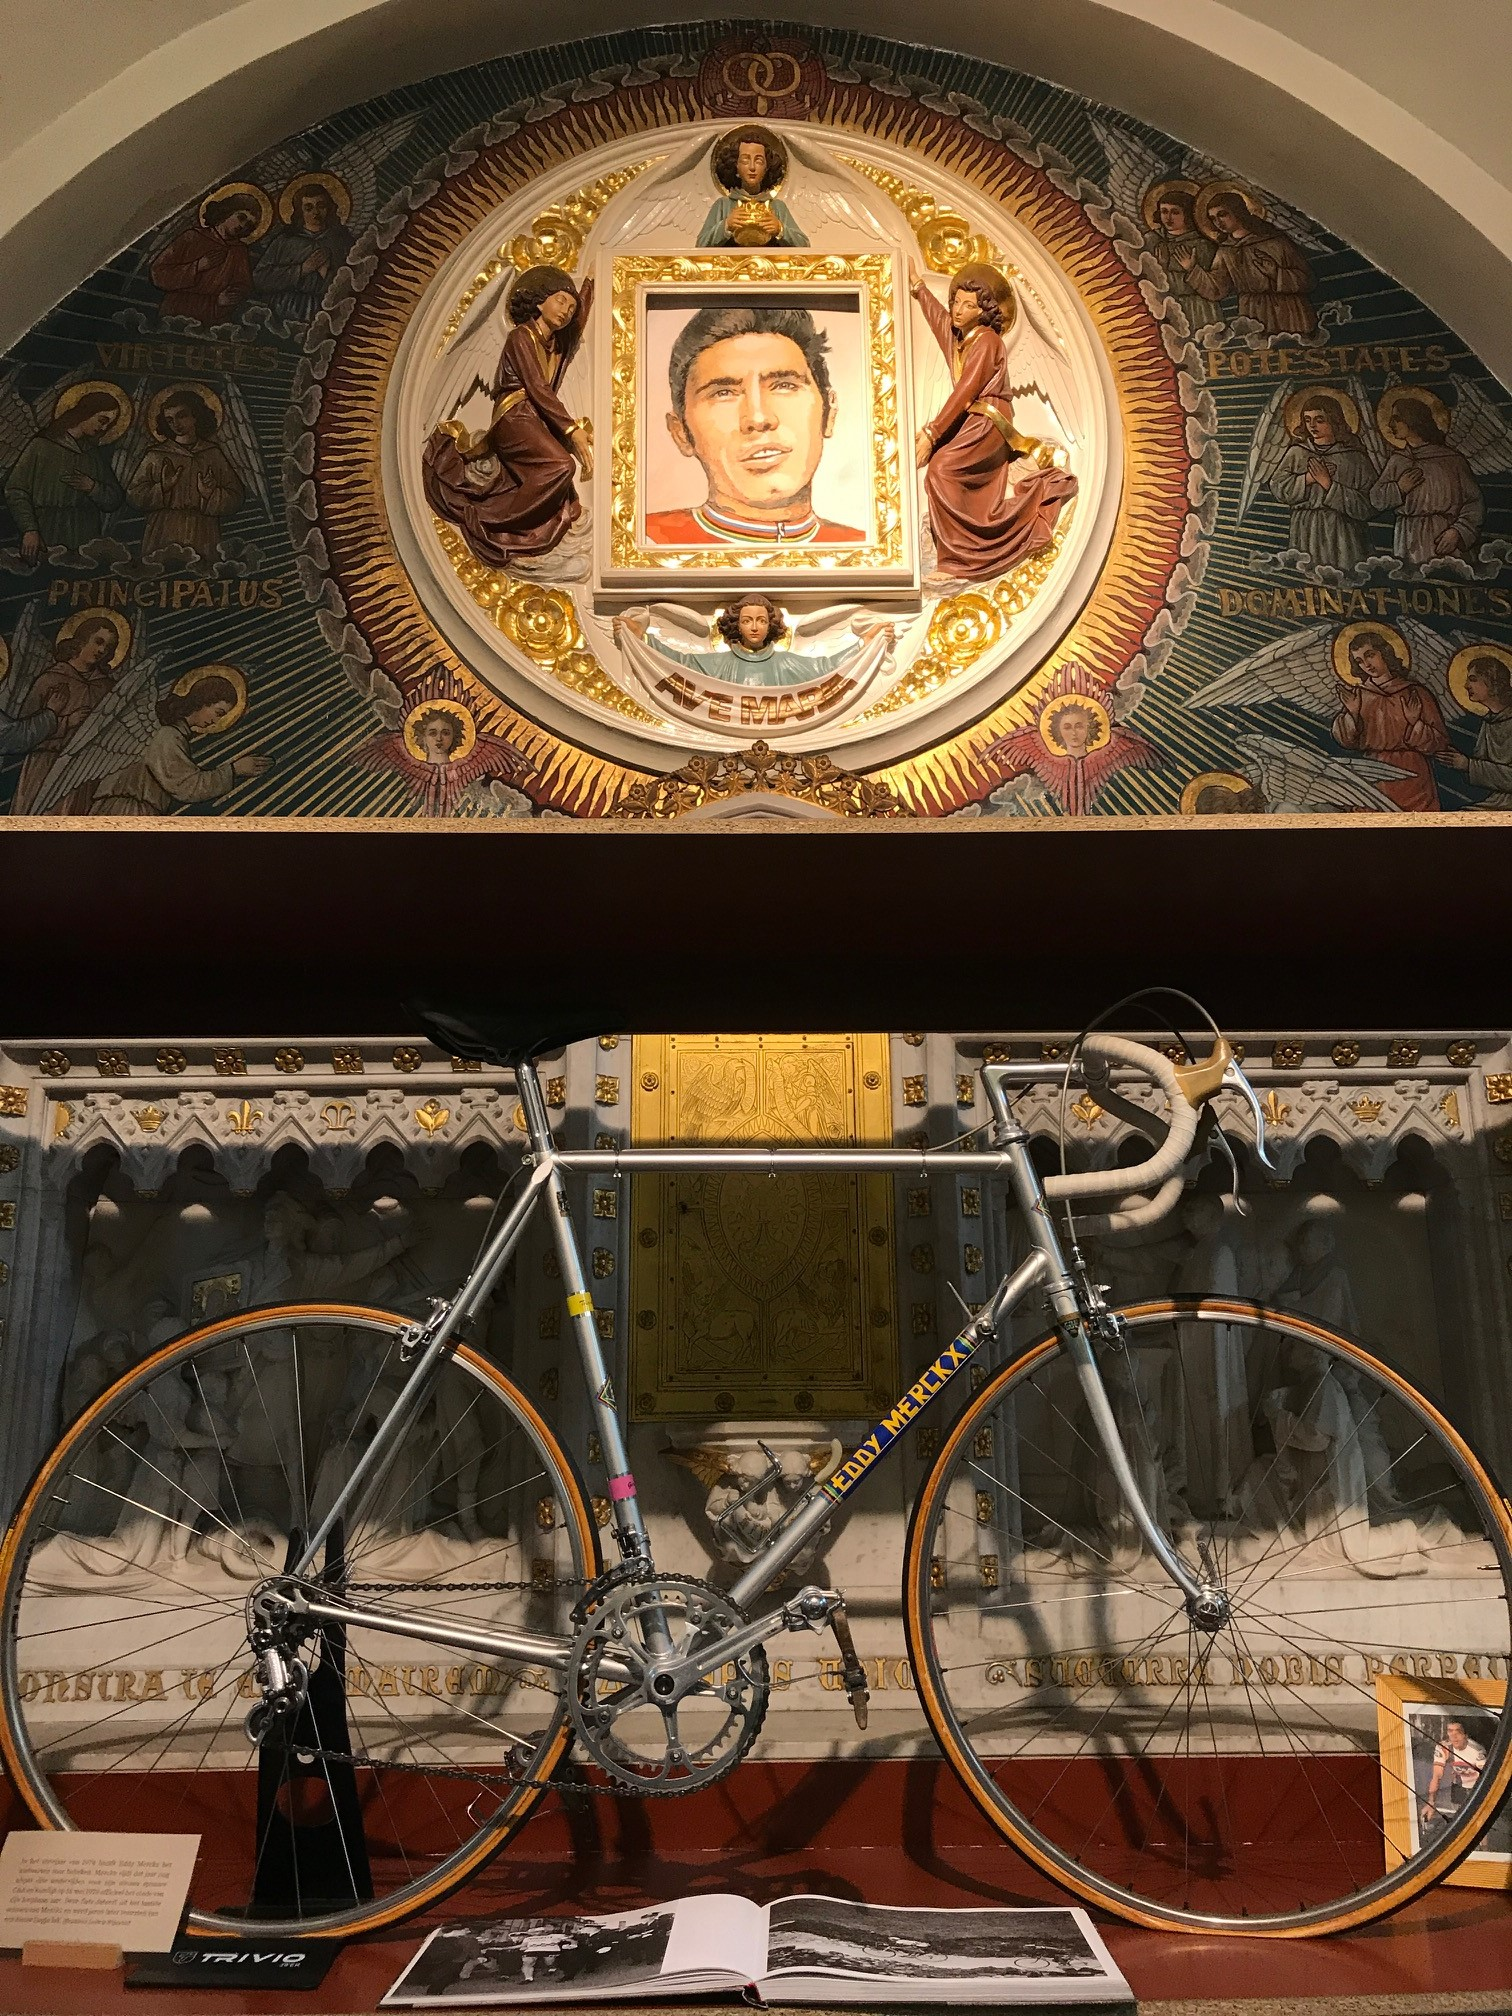 Roeselare Cycling Museum 17 - the Eddy Merckx display featured his 1978 racing bike in the C&A professional team colours. The items on display in the Fathers Church are only a small portion of what will be on display at the new museum when it opens in March 2018.The Dwars Vlaanderen (Across Flanders) professional race will start in April 2018 from outside the new Roeselare museum.